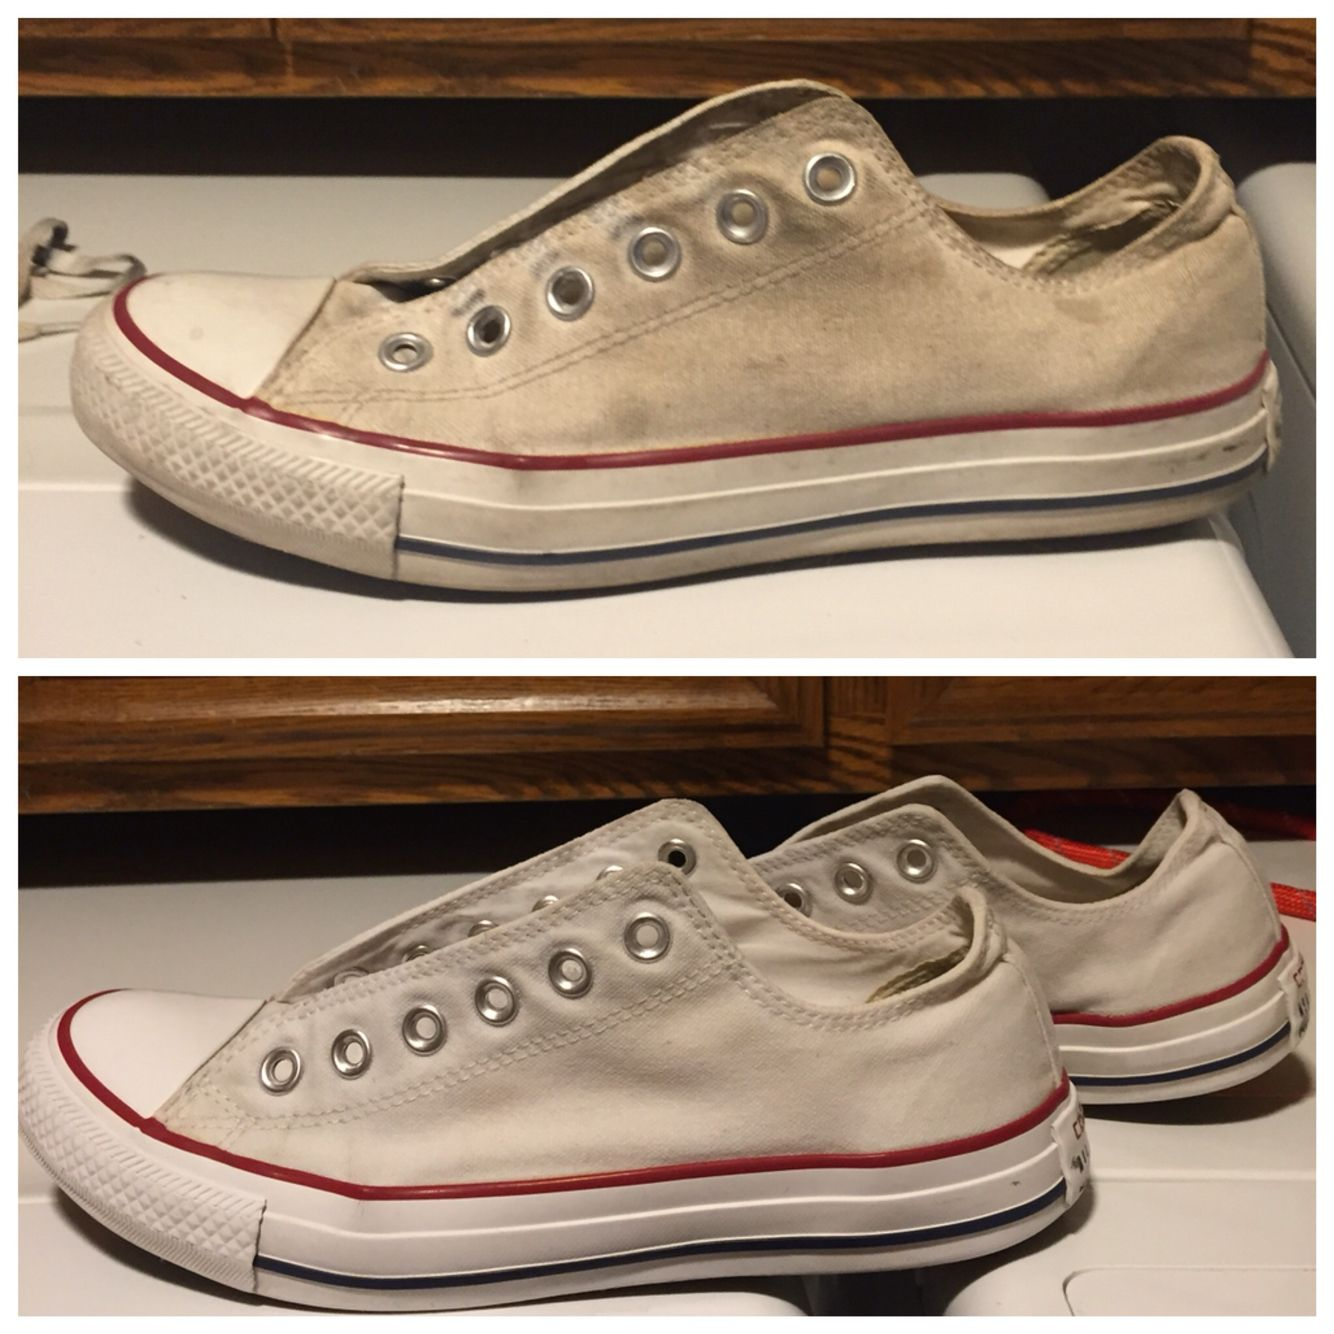 cleaning white converse: mix 1 cup of baking soda and 1 & cups of laundry  detergent. soak in cold water then scrub the mix all over the…